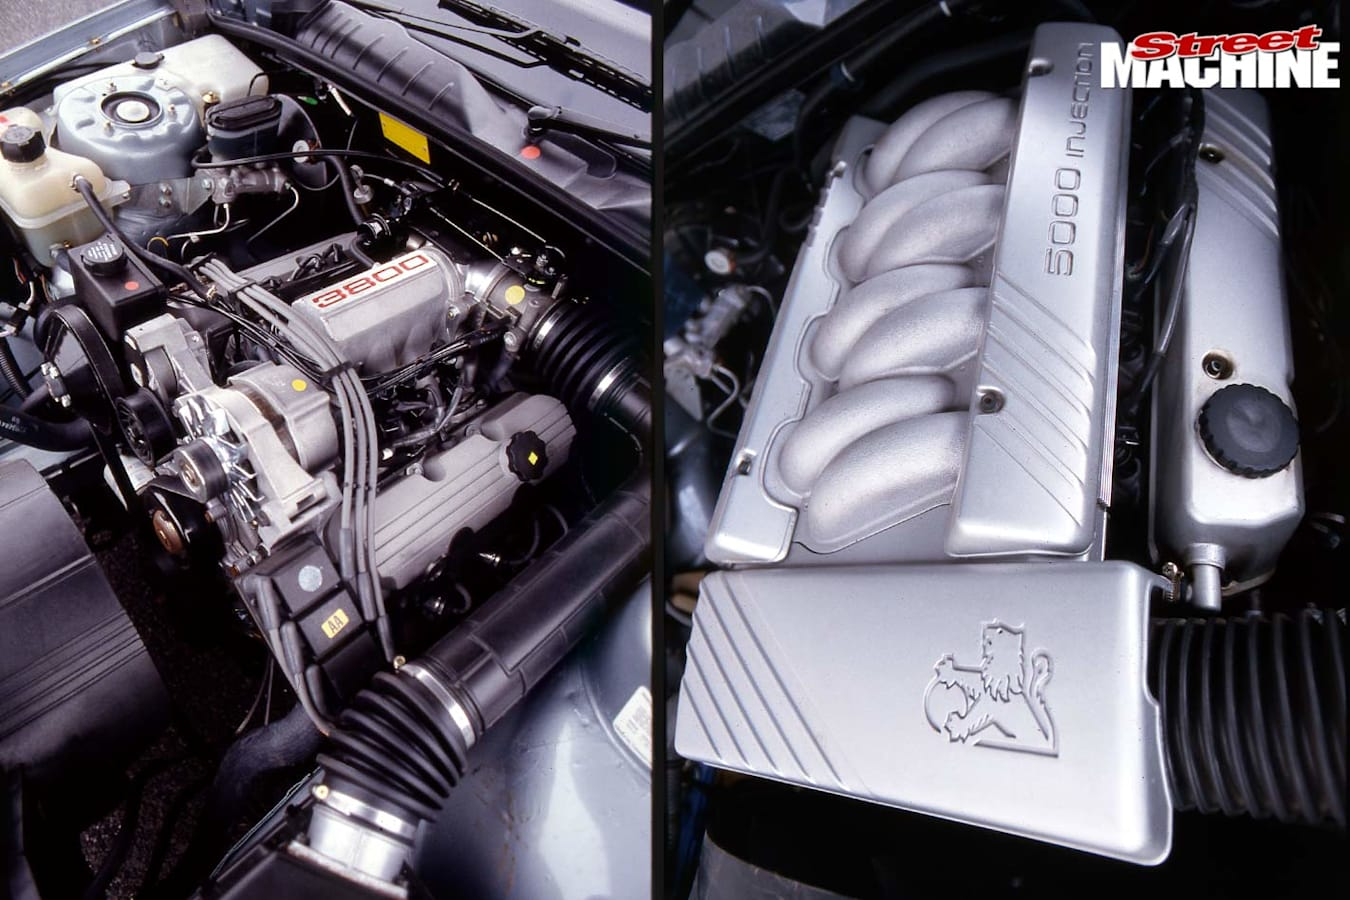 Holden Commodore VN engines